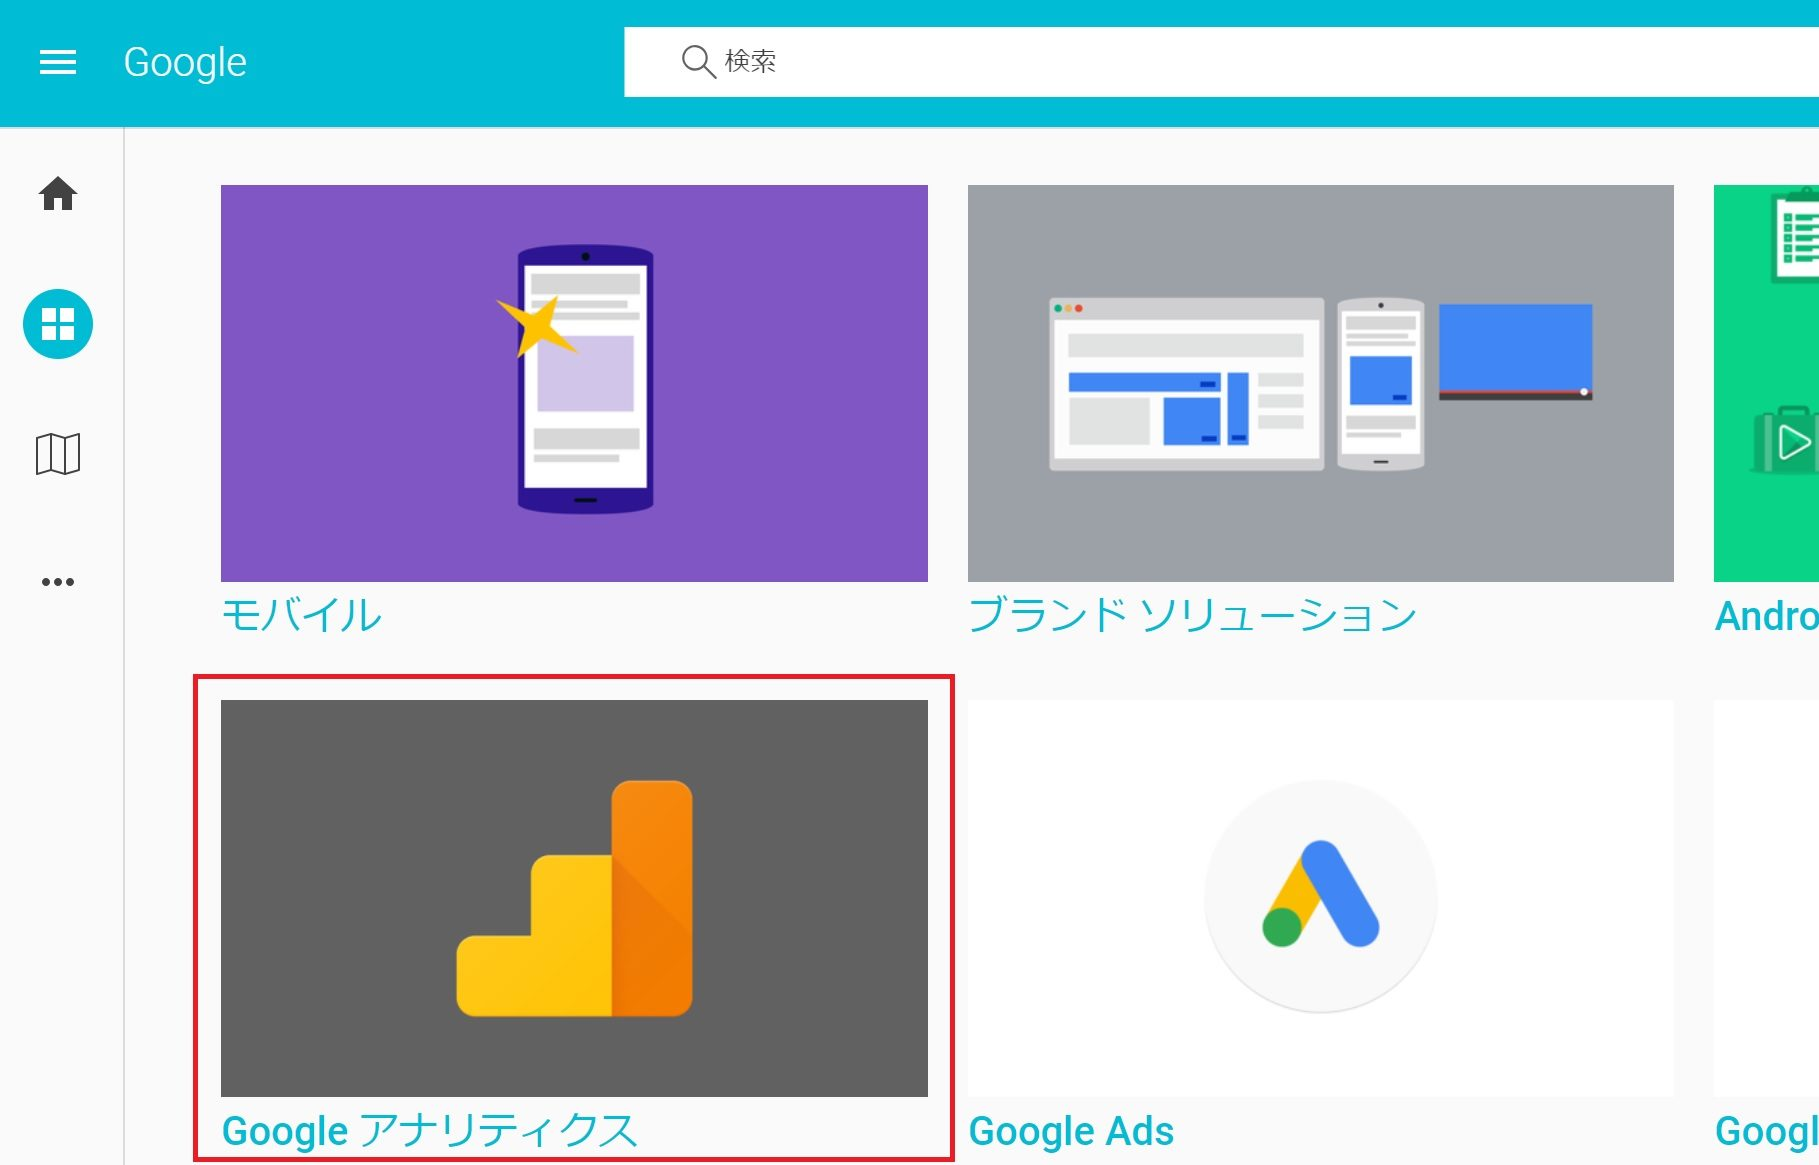 Academy for Adsの画面